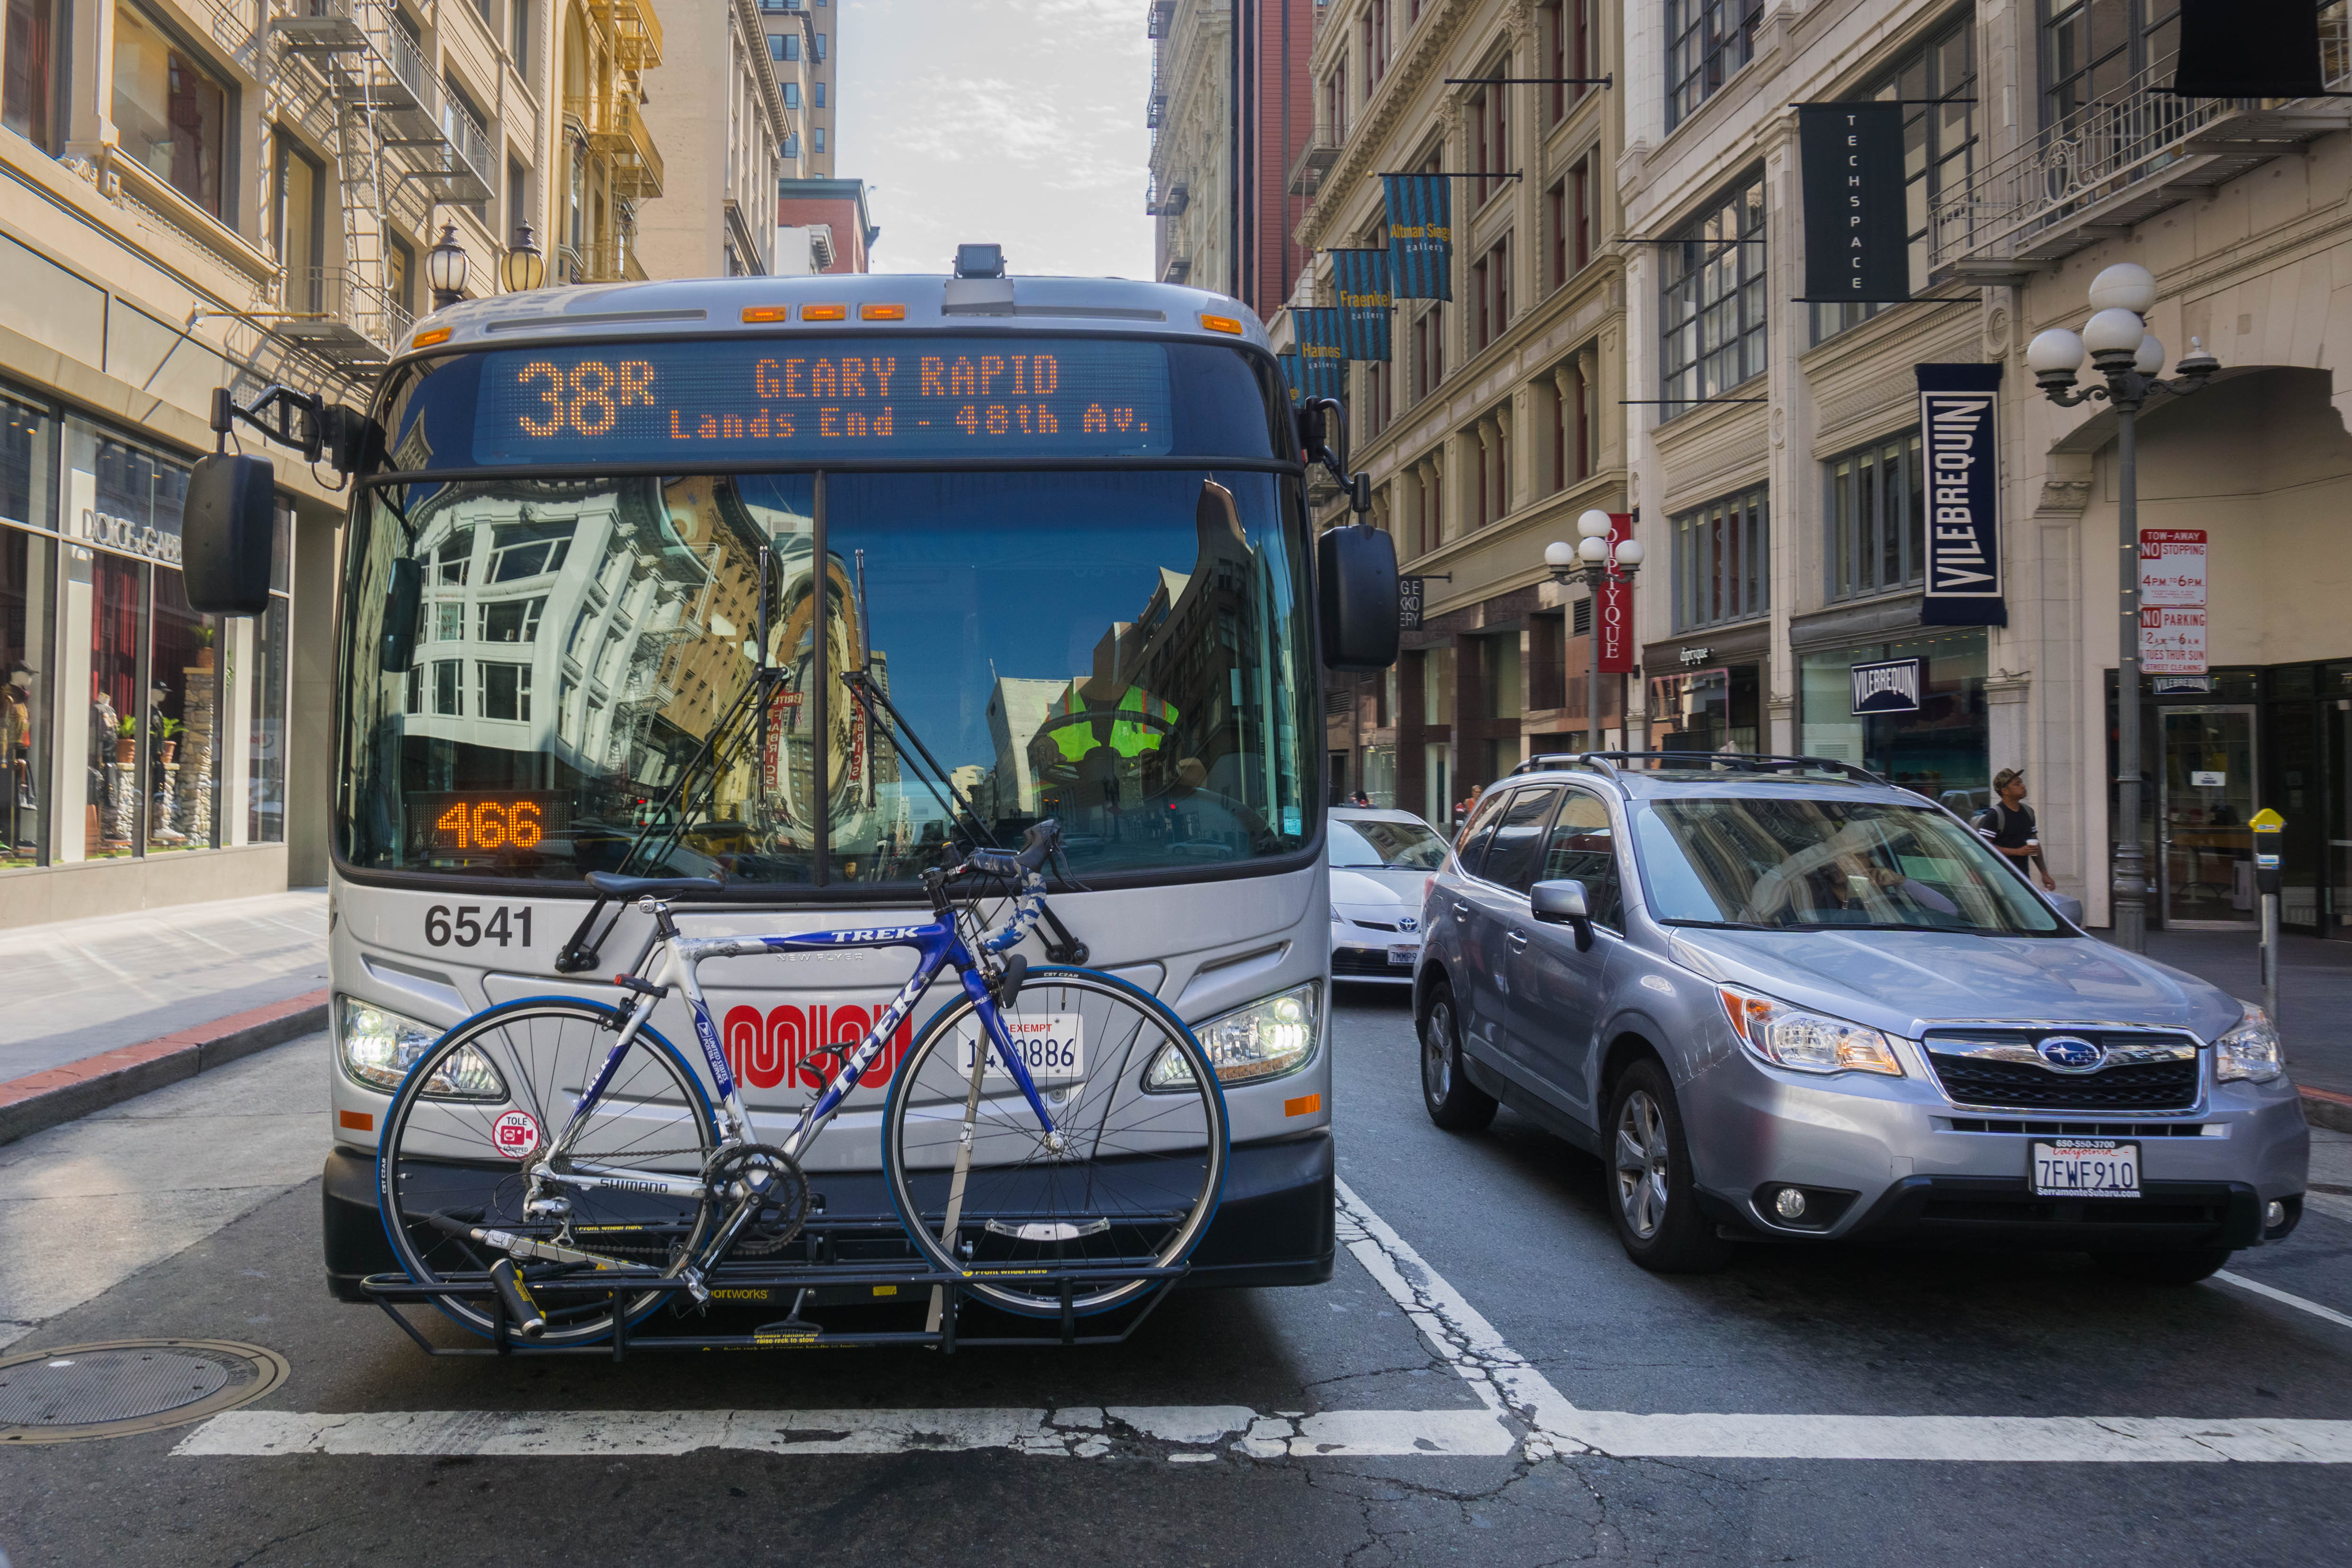 bus carrying a bicycle at a traffic stop in downtown San Francisco